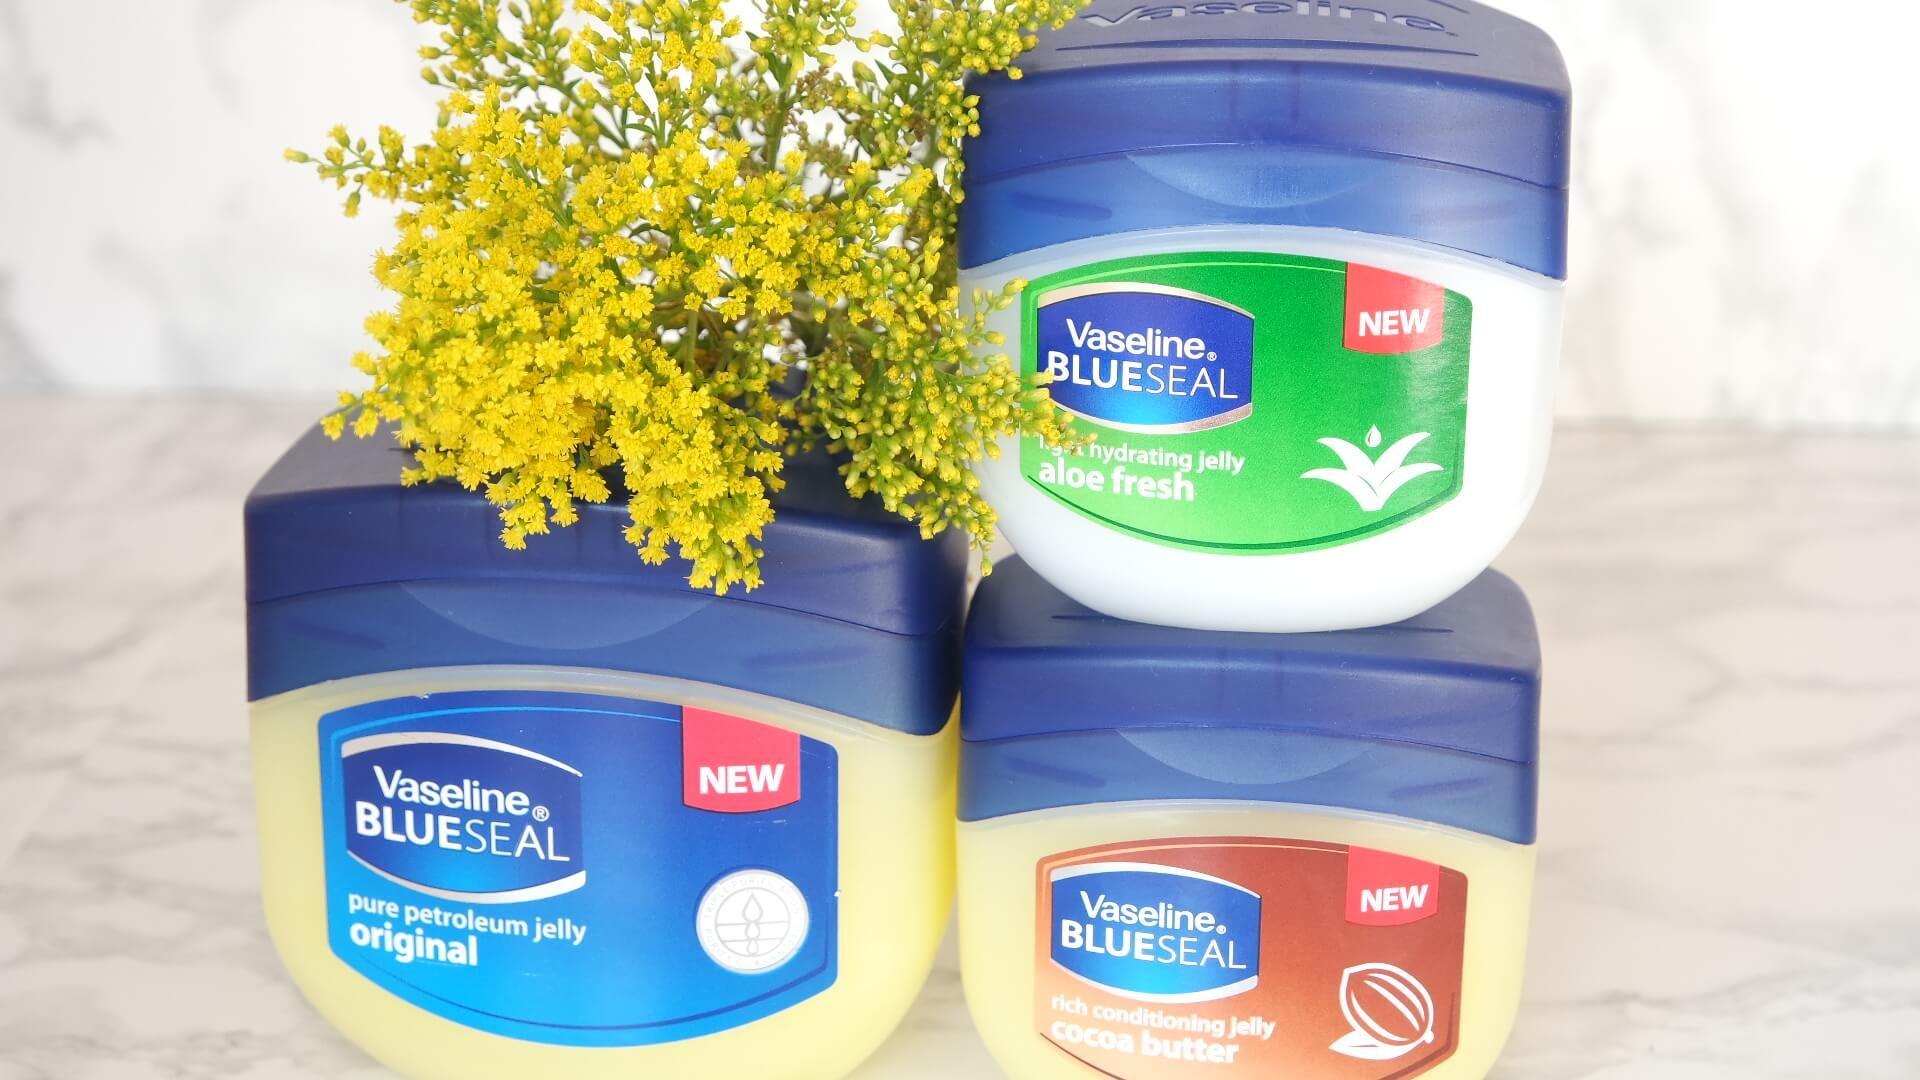 Is Vaseline good for lube - A comprehensive article on Vaseline as sexual lubricant